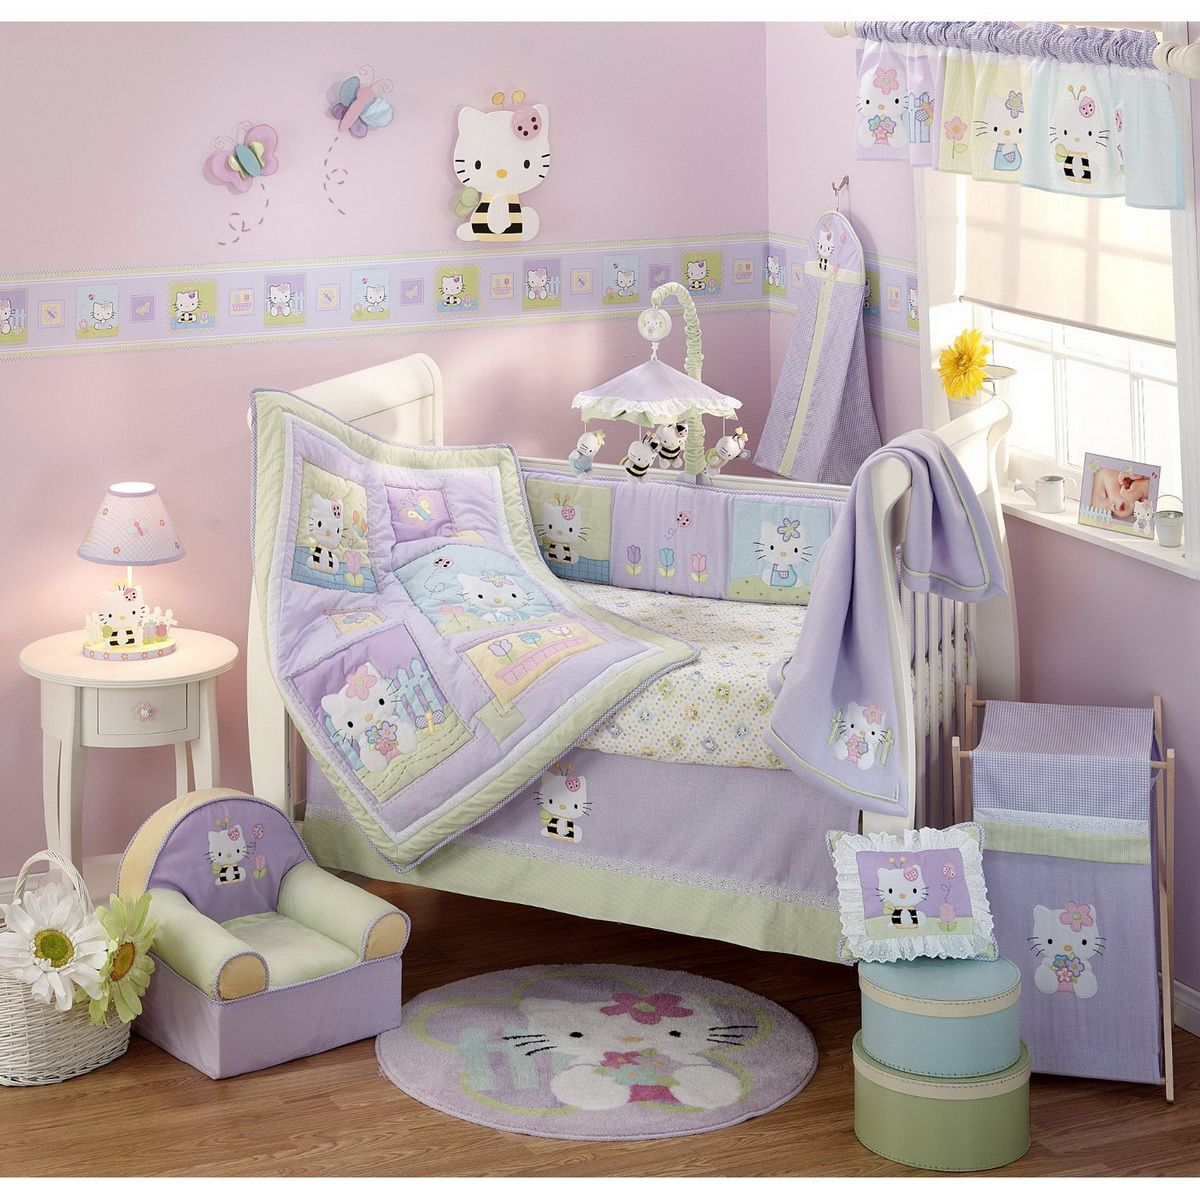 Hello kitty baby room - Hello Kitty Baby Bedding For Your Baby Girl S Crib Hello Kitty Nursery Bedding And Decor In The Latest Colors And Themes Hello Kitty Crib Sets With Wall